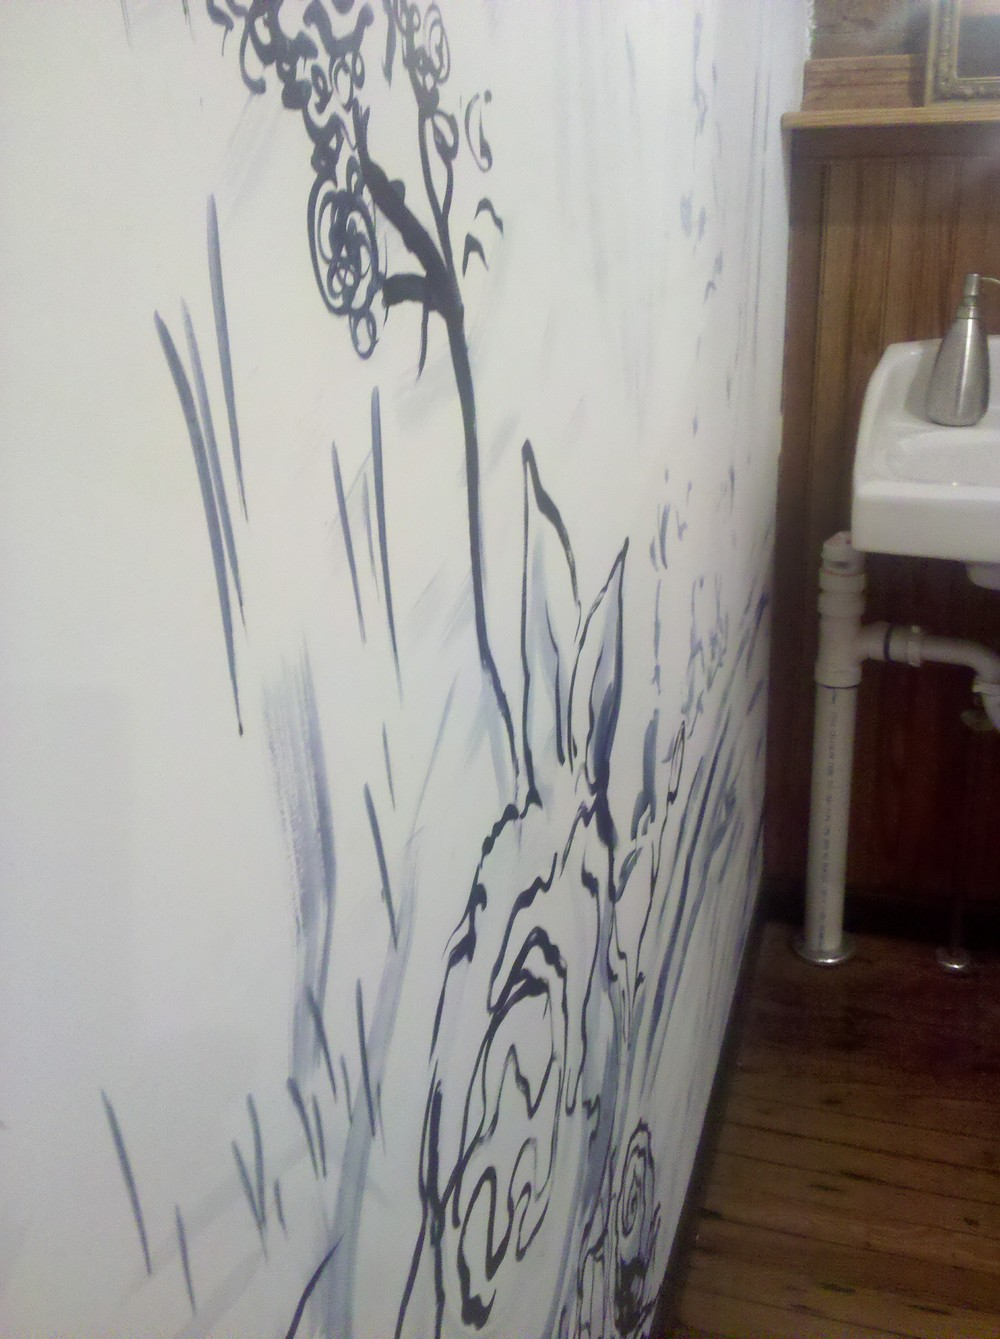 Flow in Marshall, mural in the bathroom